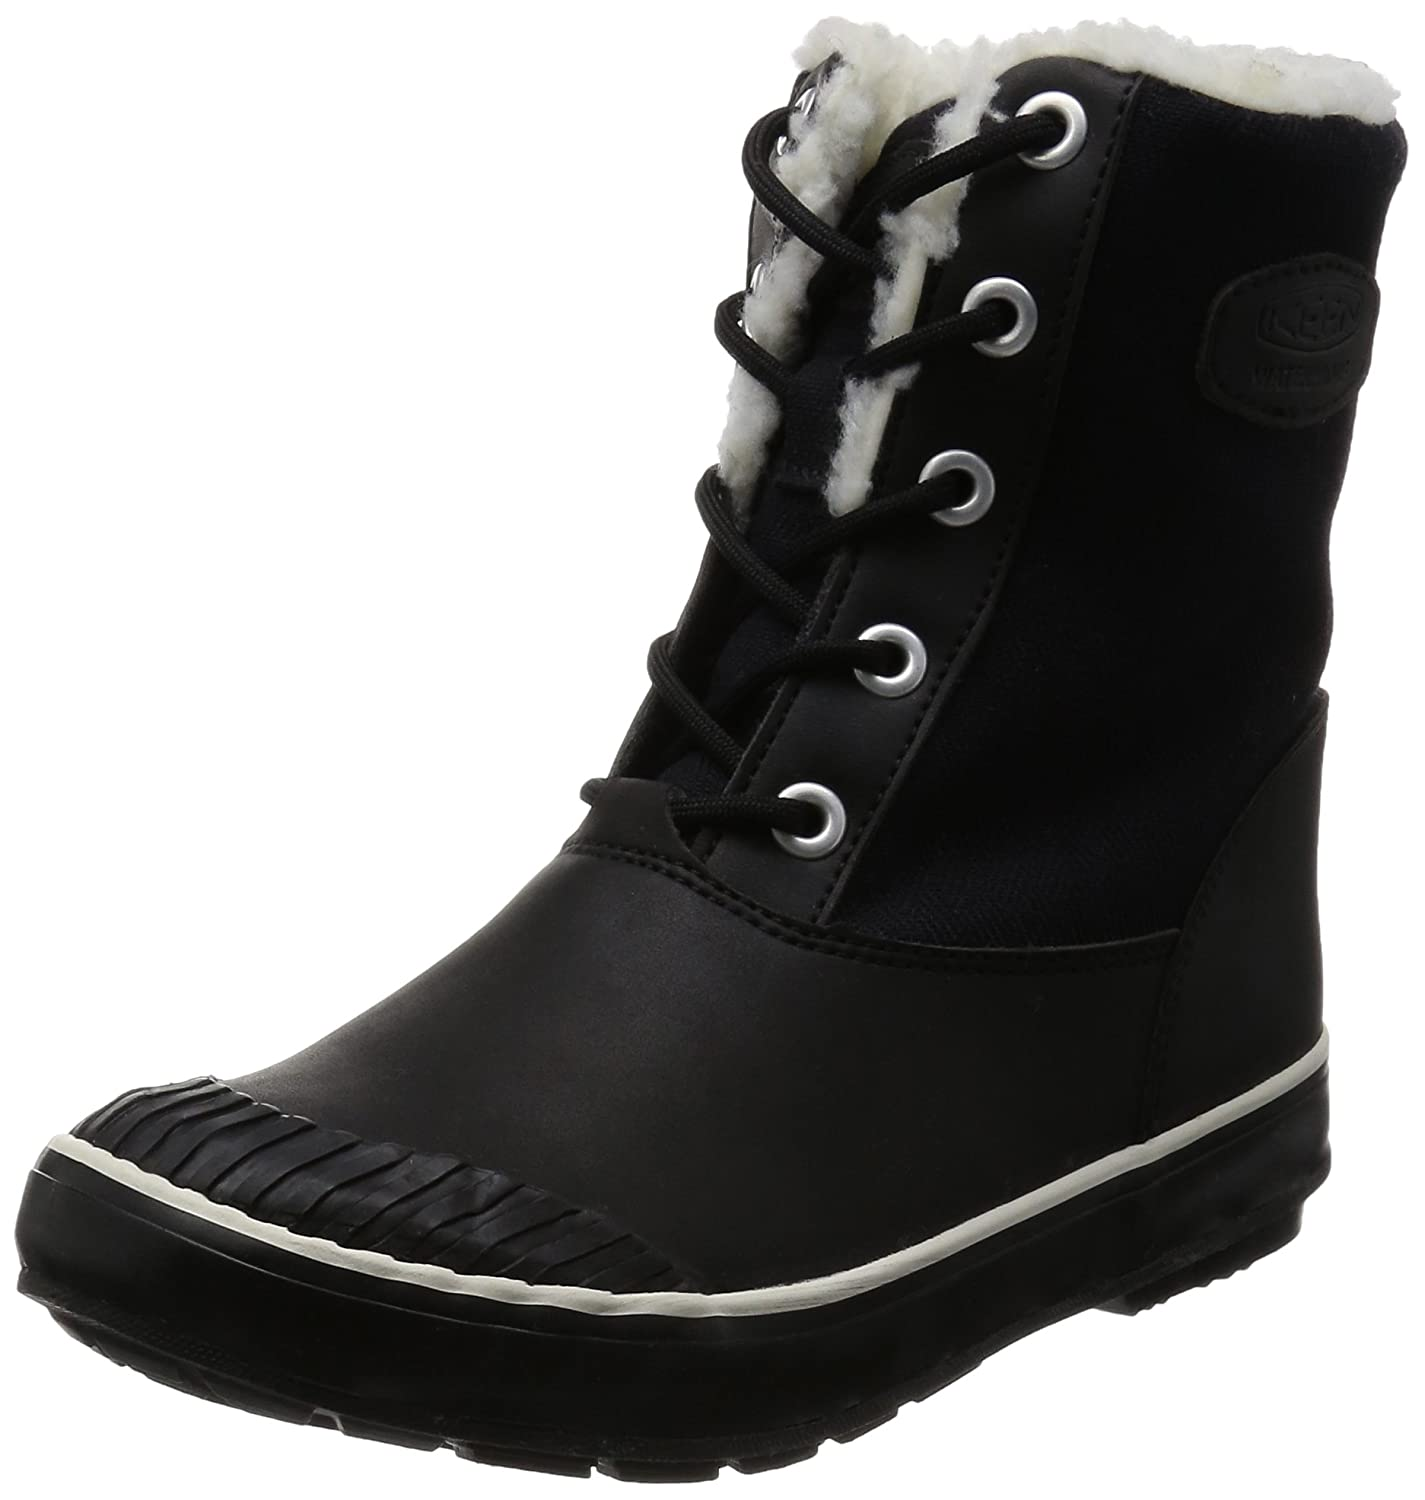 Black KEEN Women's Elsa L WP Mid Calf Boots